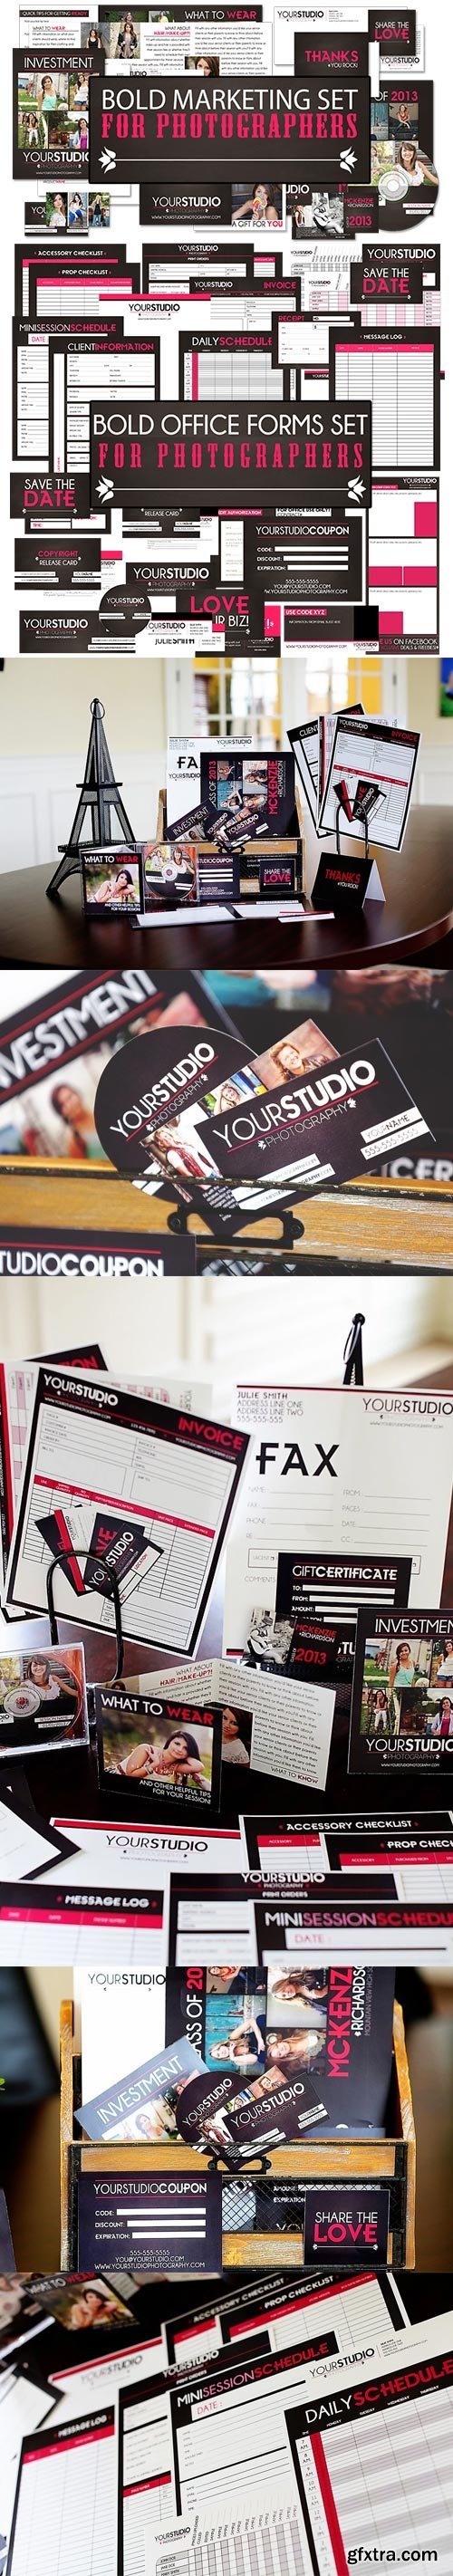 Photographer Resources - BOLD Marketing & Office Forms Bundle